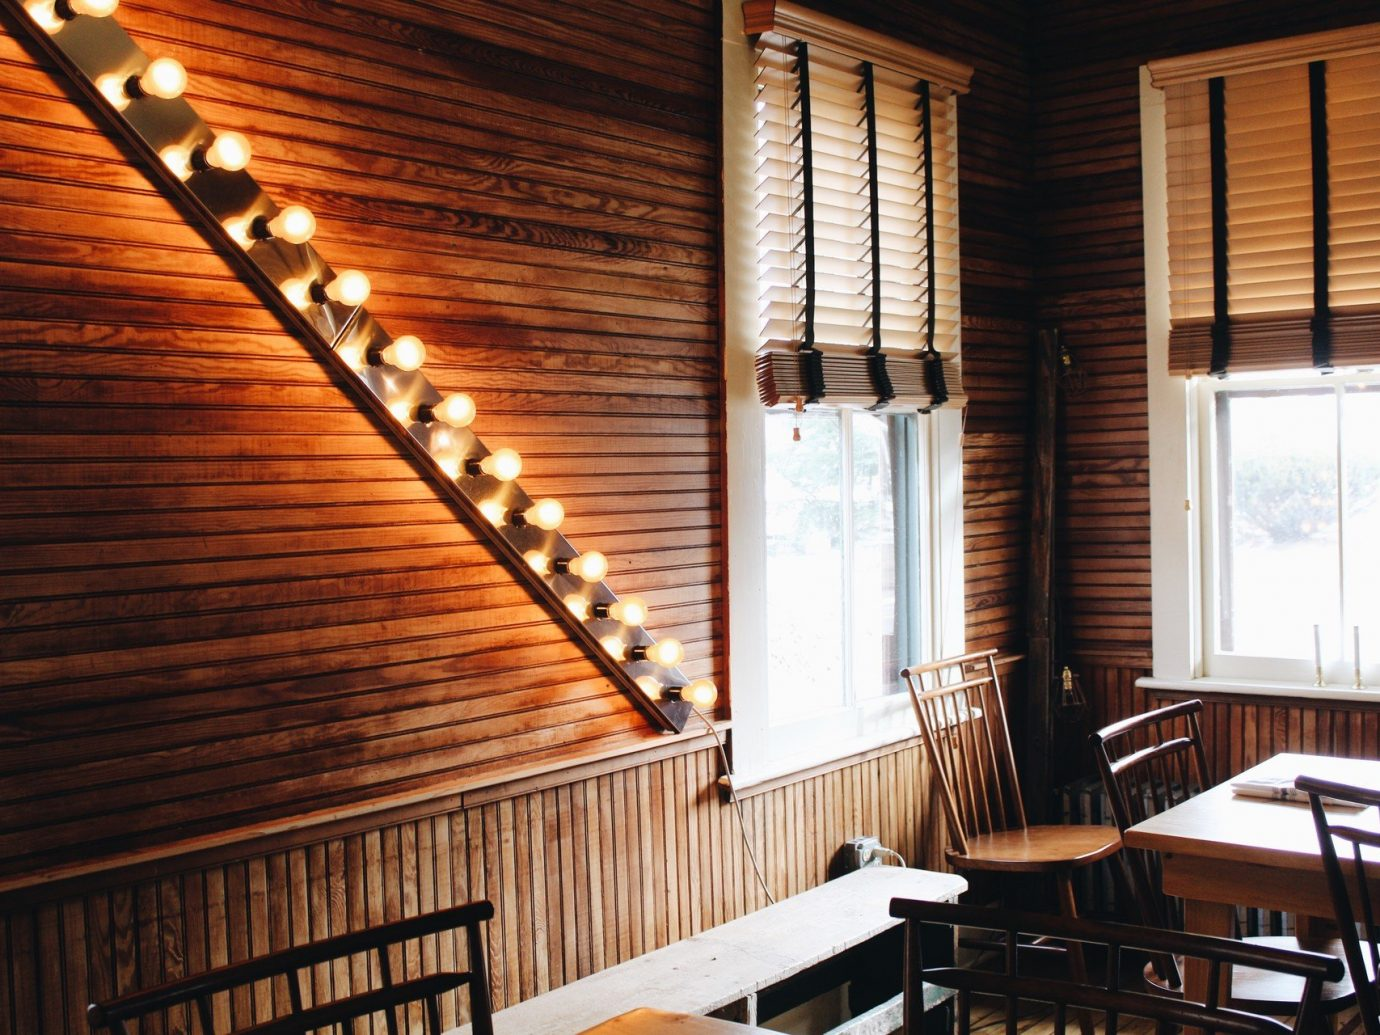 table wooden chair indoor window property room wood hardwood interior design window covering ceiling cottage Dining furniture